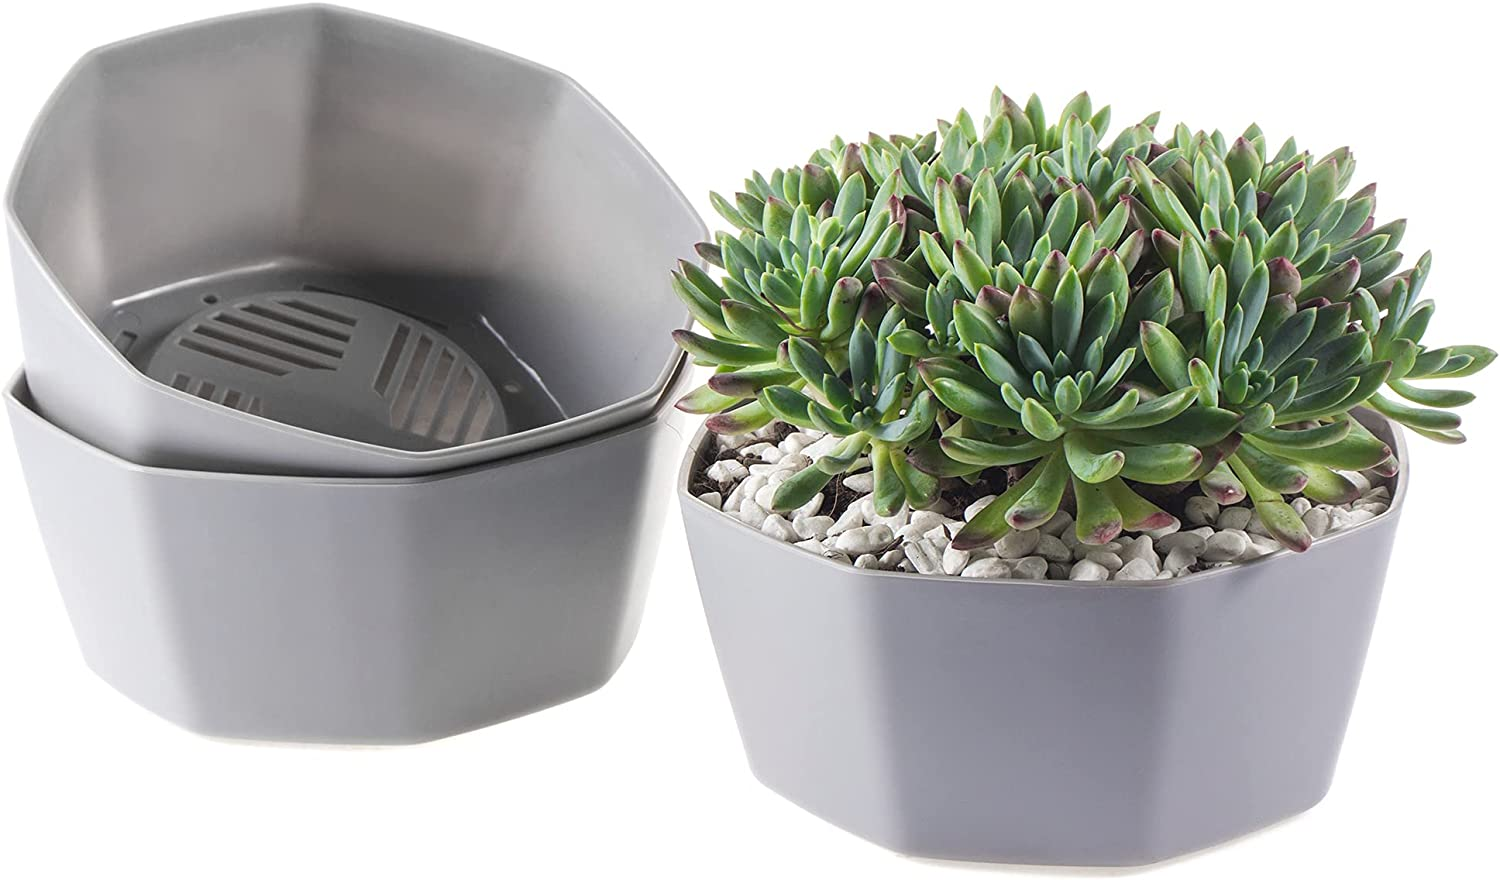 3 Pack Grey Flower Pots Outdoor Indoor Garden Planters, Plant Containers with Drain Hole, Plant Pots for All Home Garden Flowers Succulents.